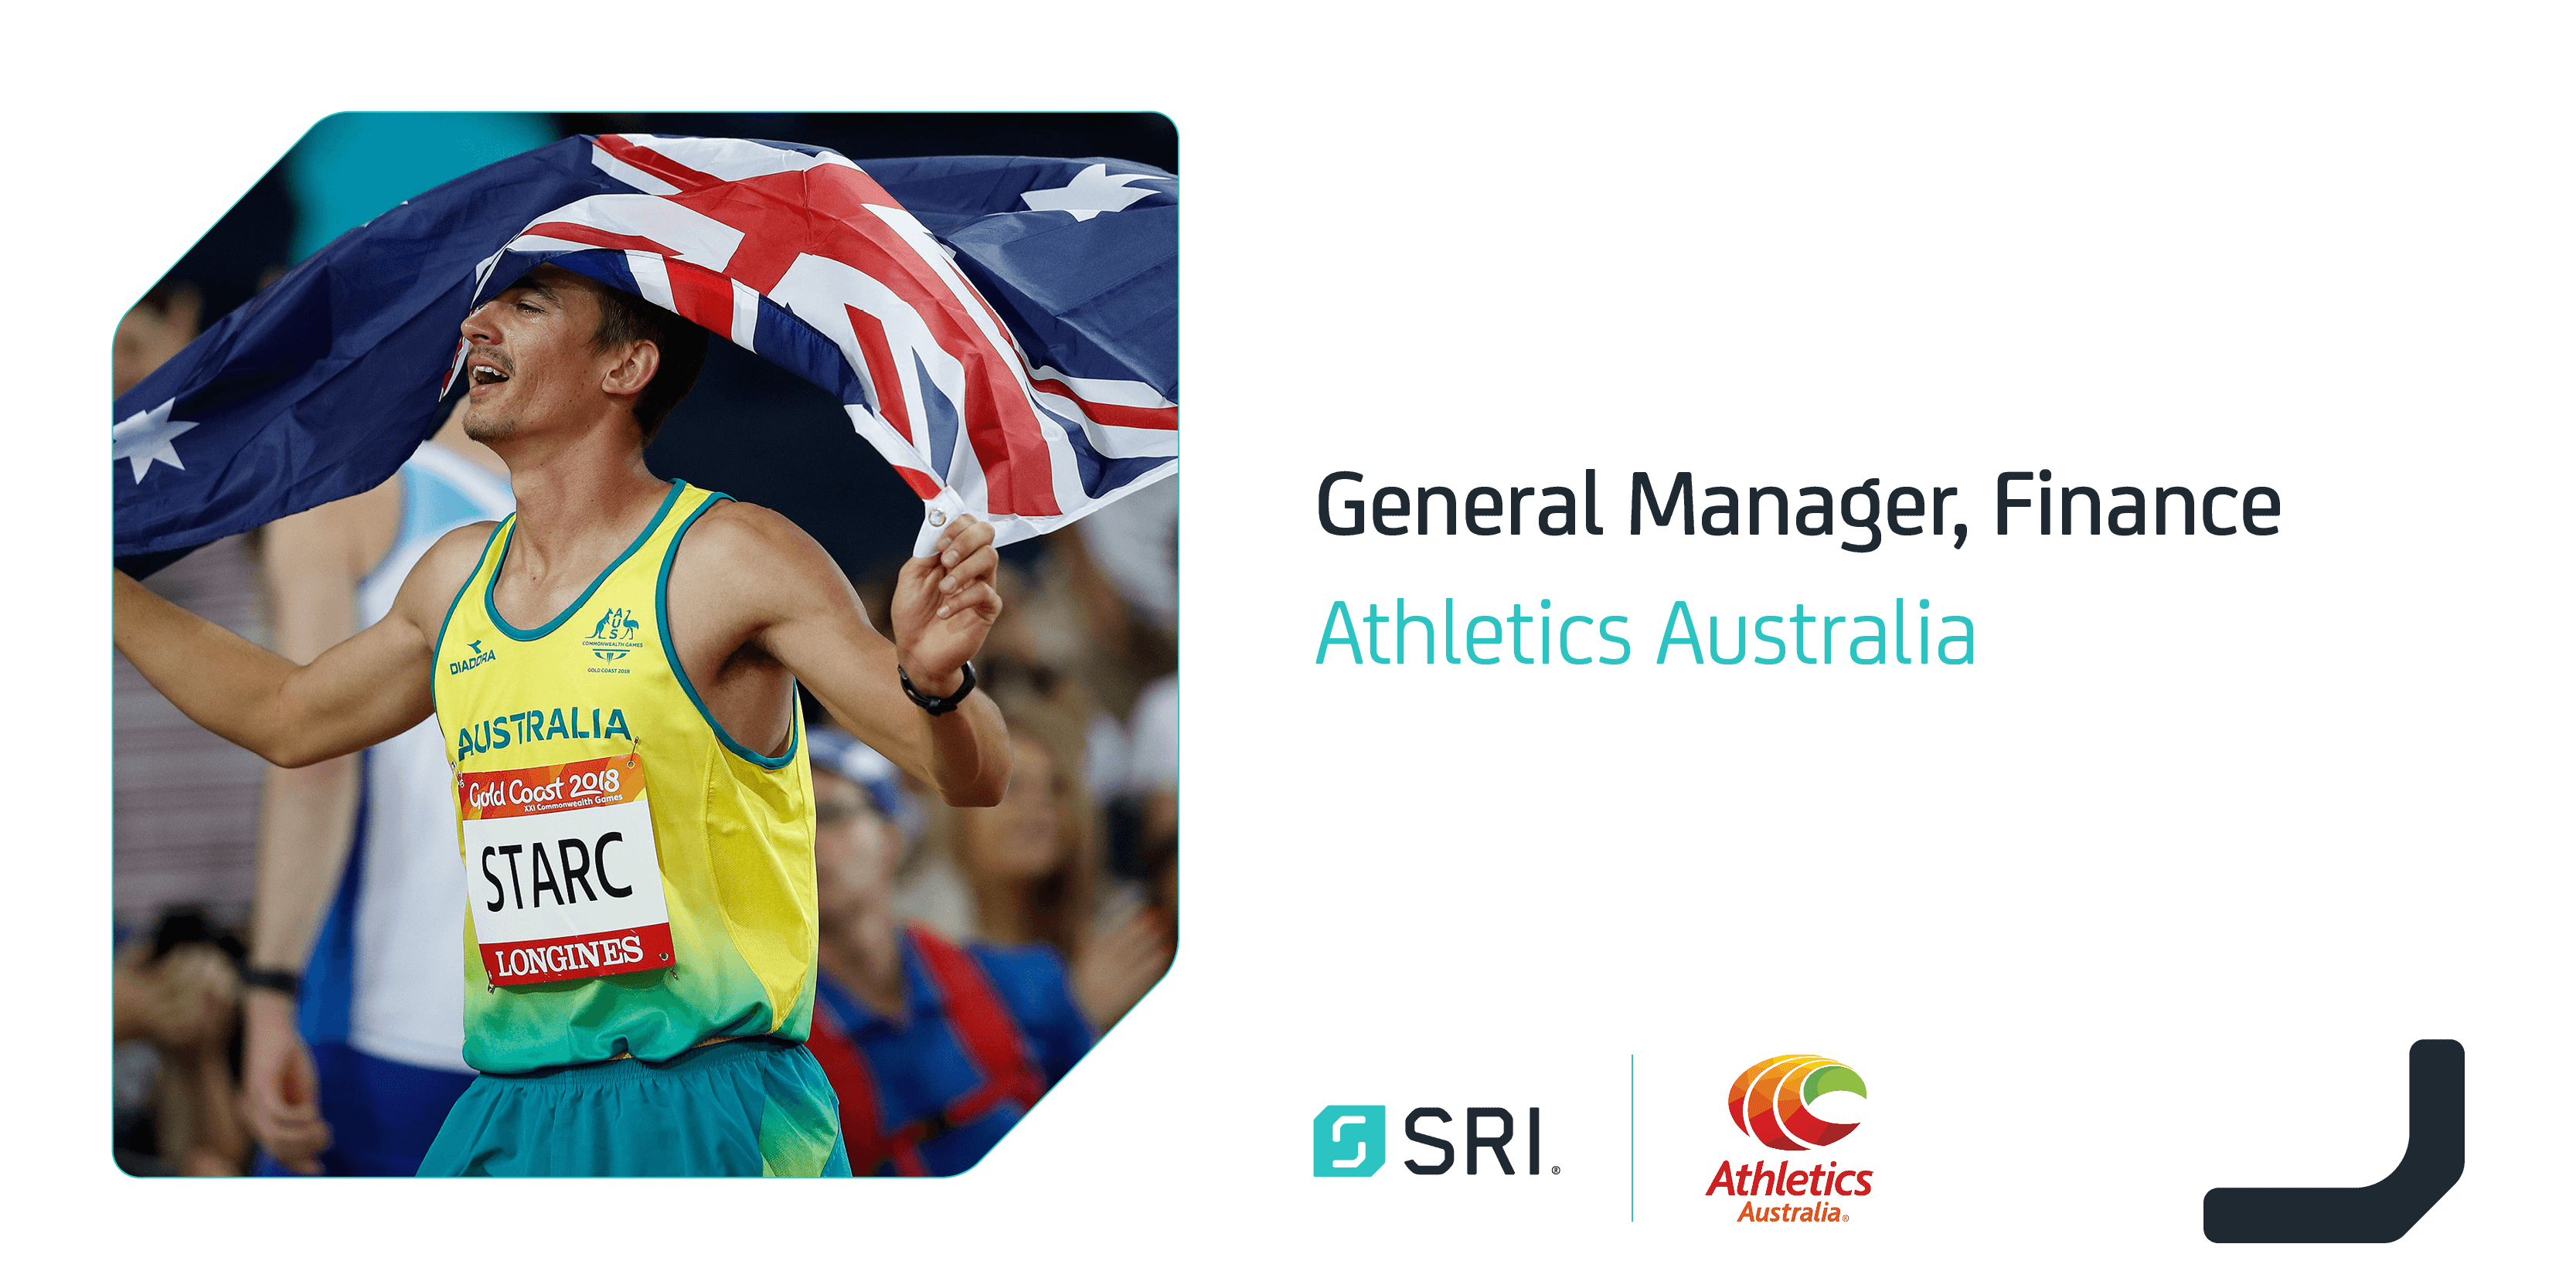 General Manager, Finance - Athletics Australia